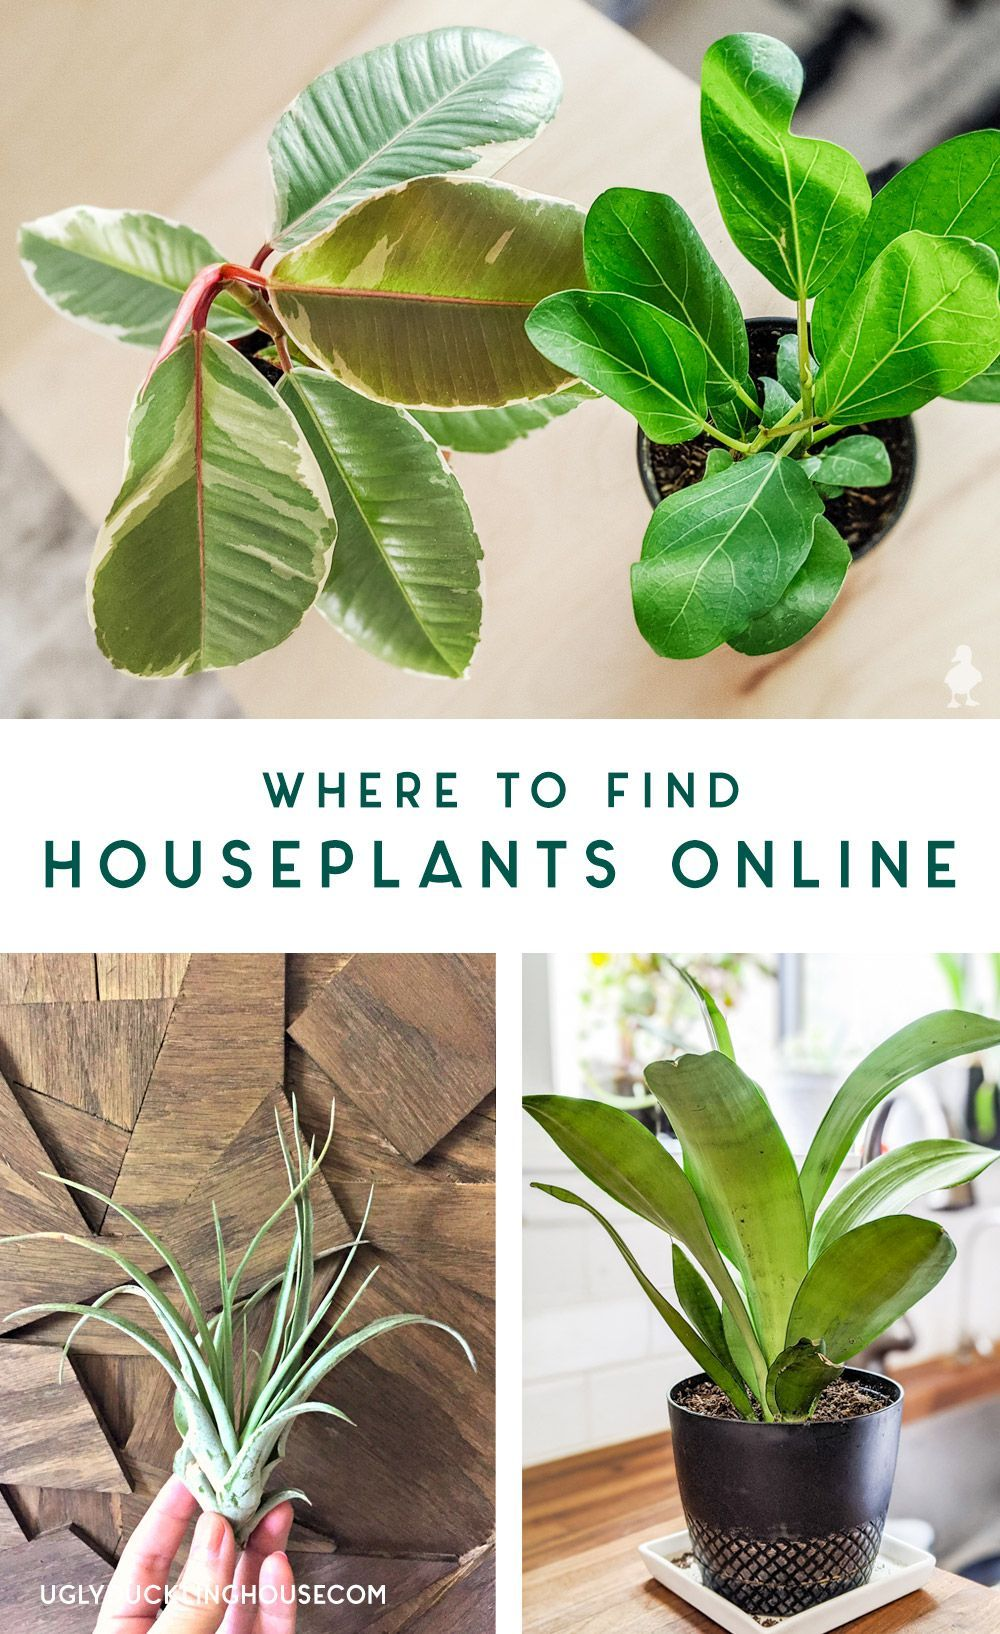 Buying Houseplants Online What To Look For My Fave Shops In 2020 Houseplants Hanging Plants Diy Hanging Plants Outdoor